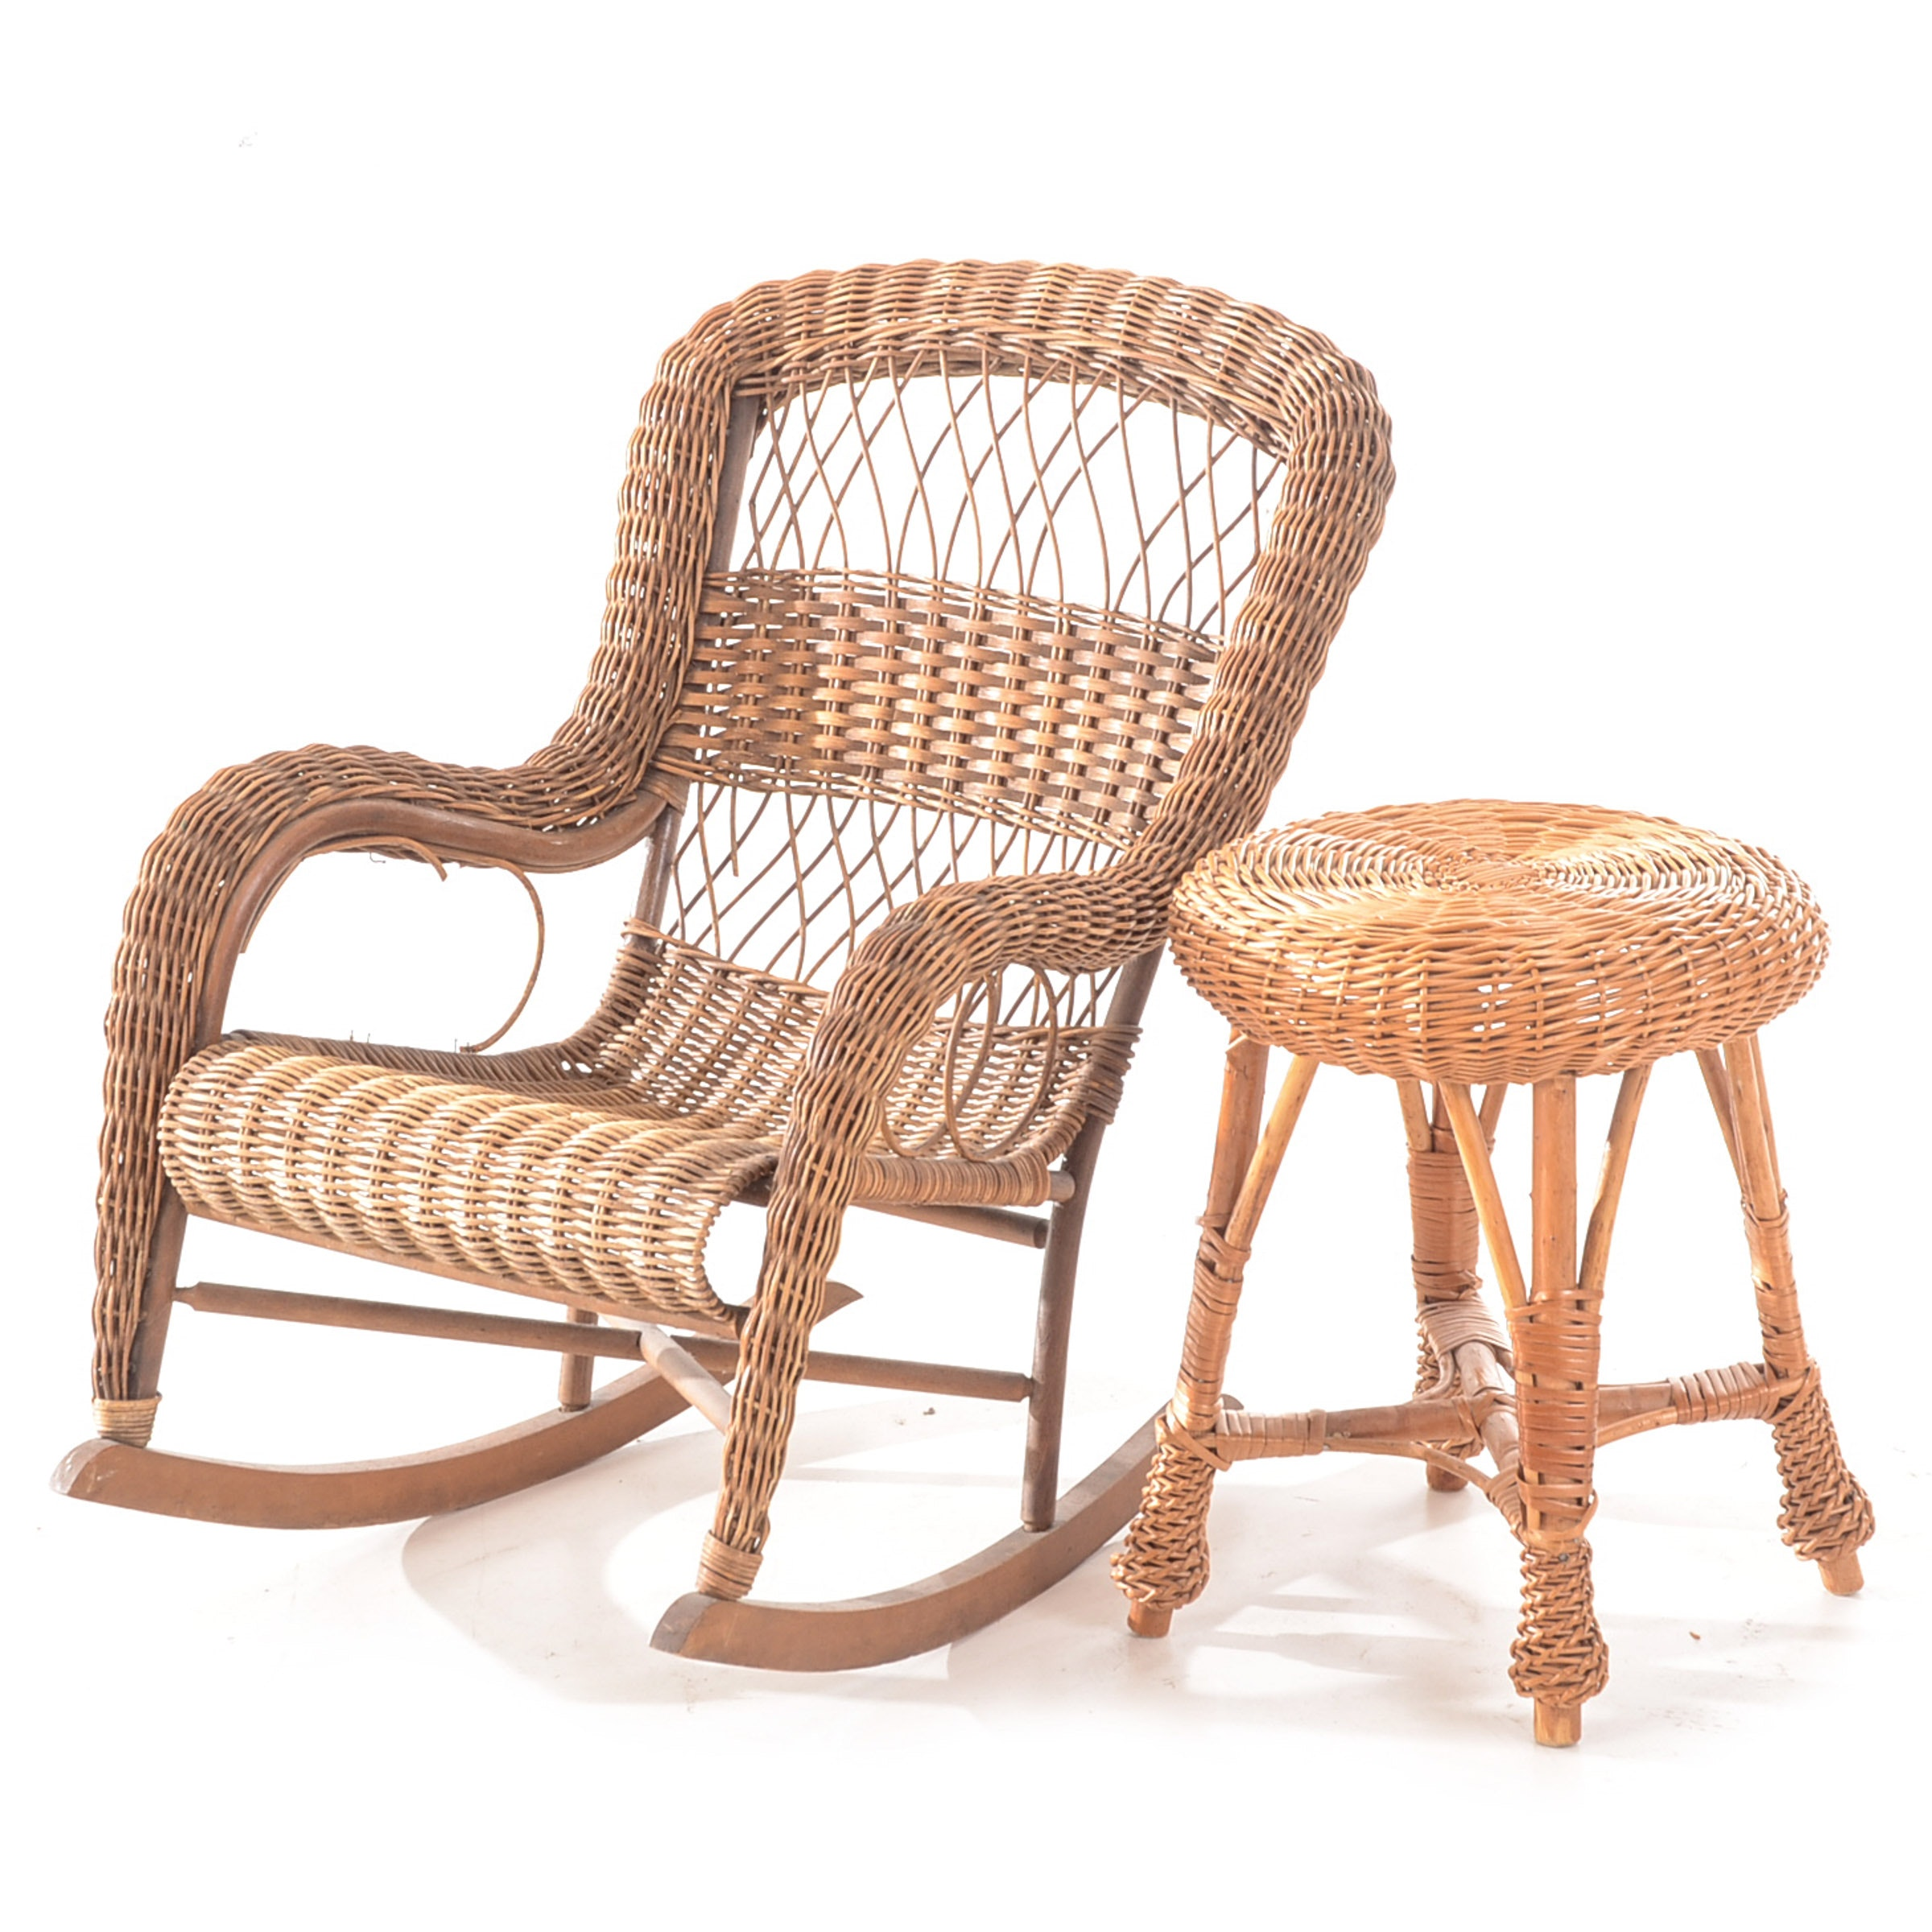 Vintage Child's Wicker Rocker and Stool